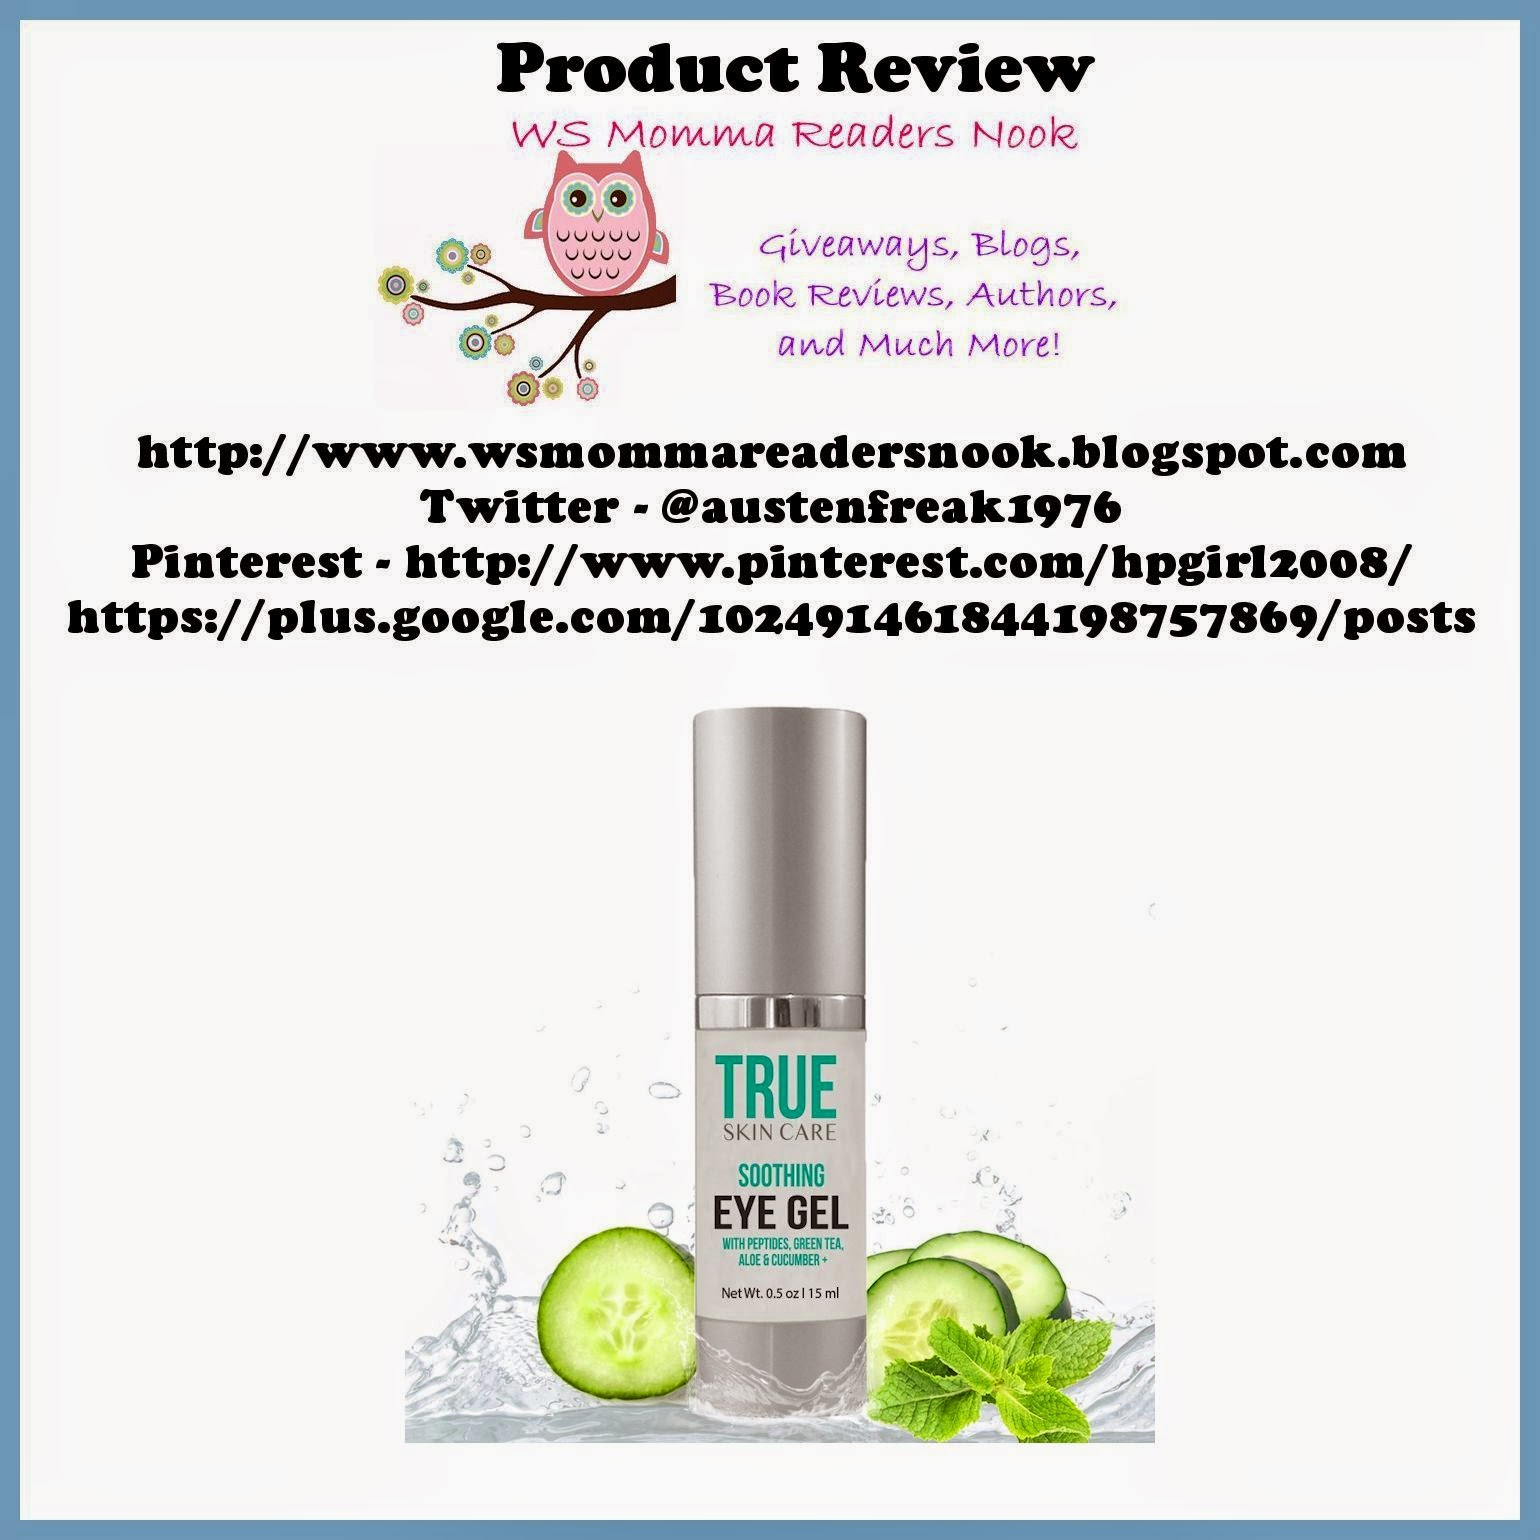 http://www.amazon.com/natural-under-serum-cucumber-vitamin/dp/b00l2mf42e/ref=sr_1_235?s=beauty&ie=utf8&qid=1419015900&sr=1-235&keywords=eye+cream